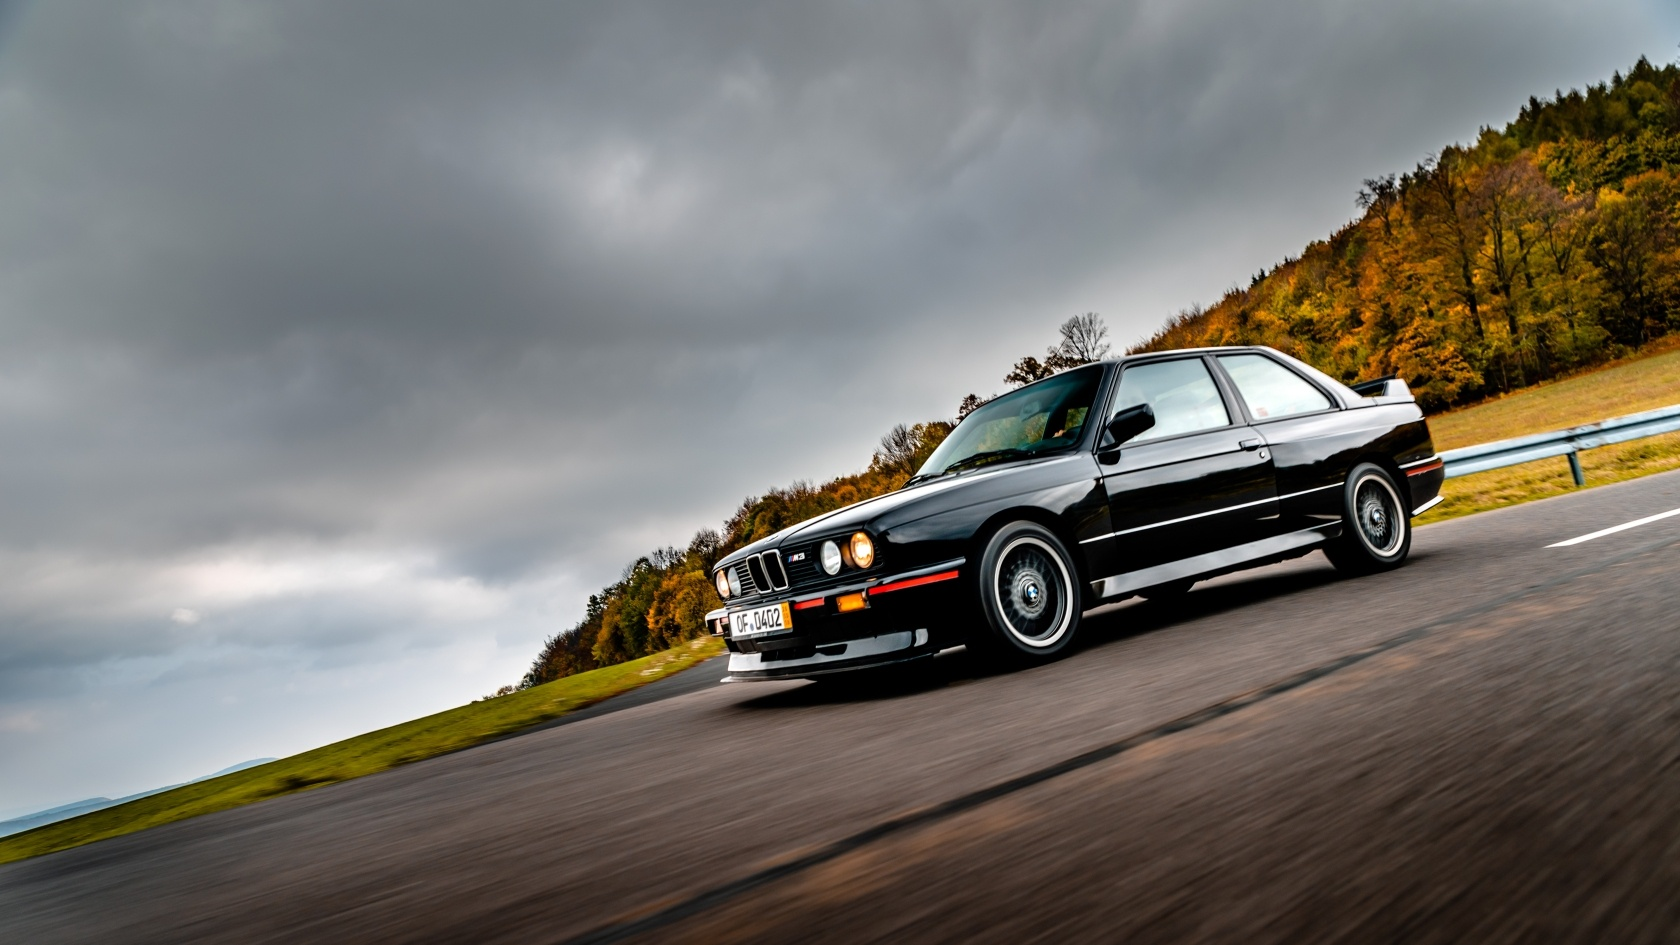 E30 BMW M3 Sport Evolution of Matthias Unger in paint finish Gloss Black driving on a road in autumn